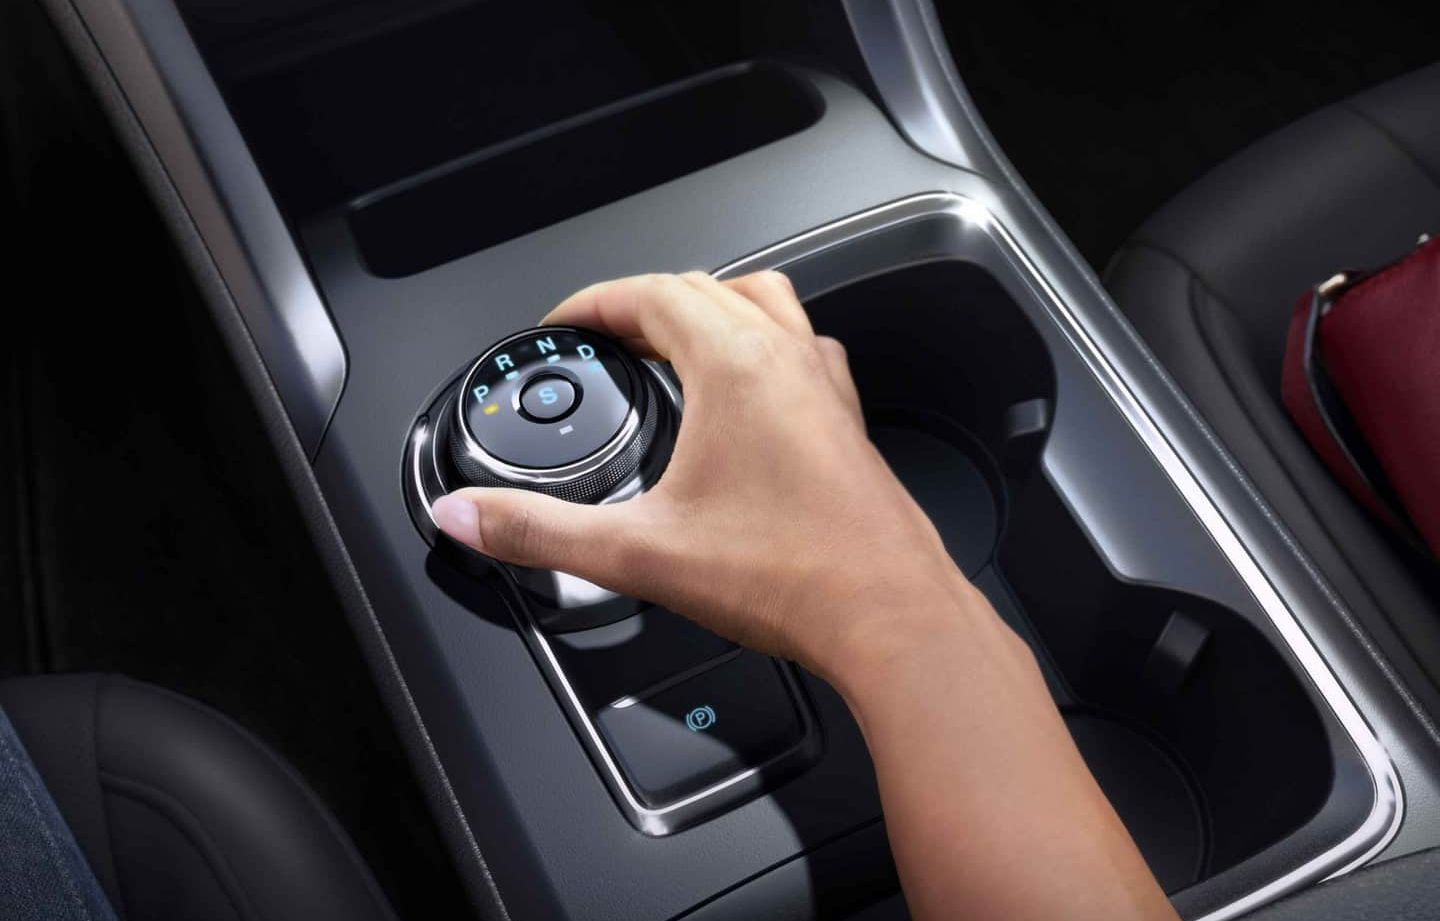 2019 Ford Fusion Rotary Gear Shifter